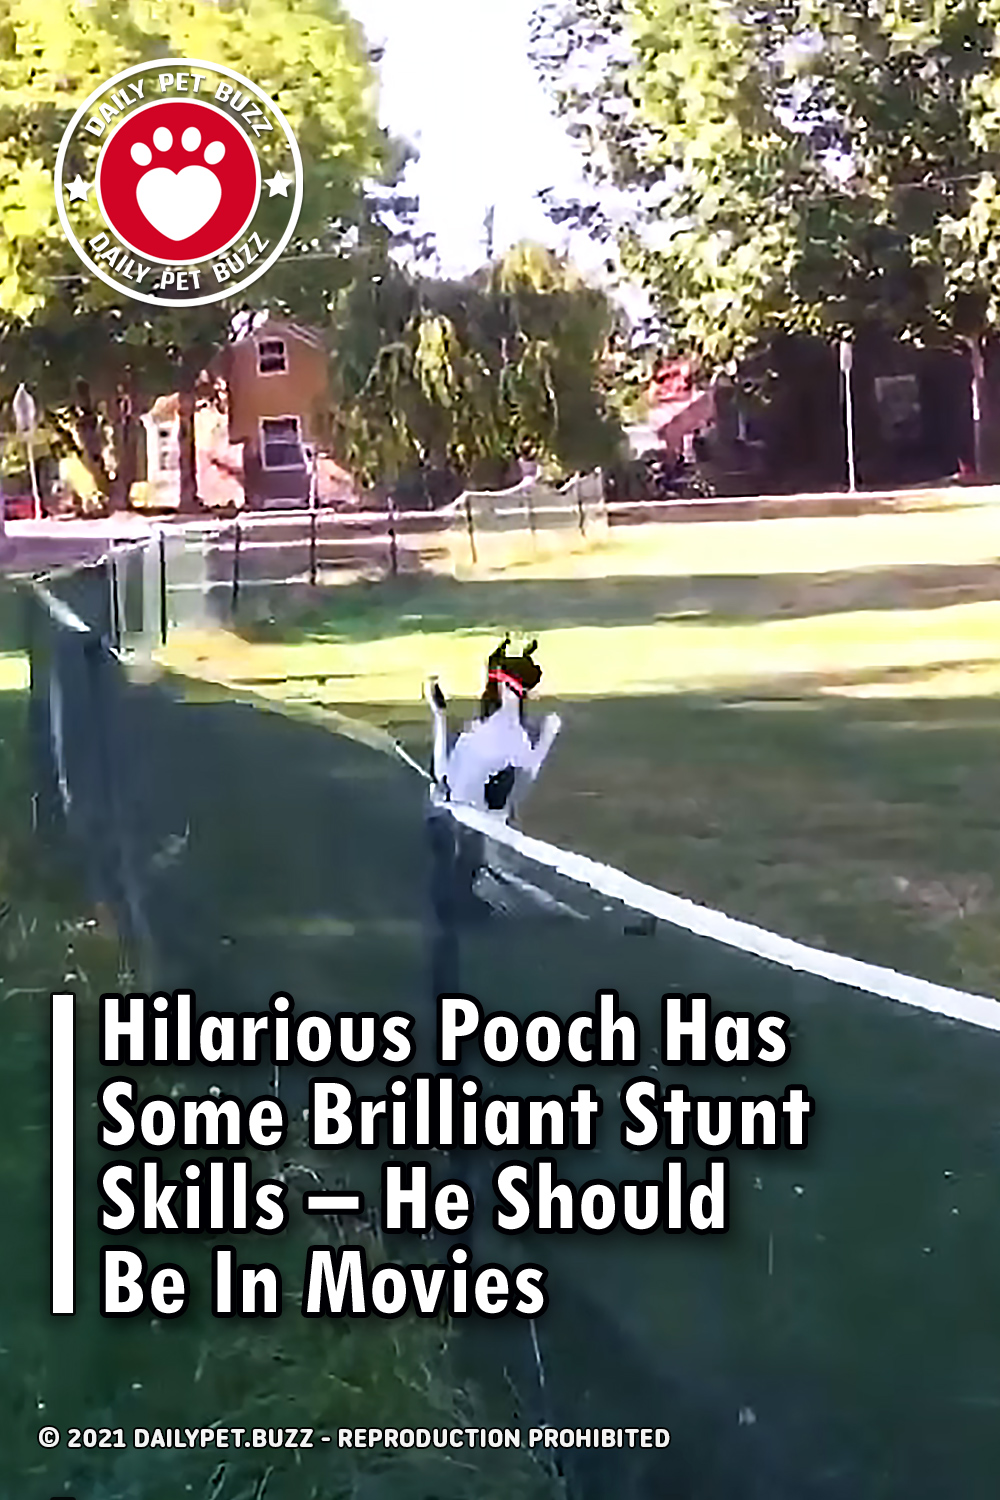 Hilarious Pooch Has Some Brilliant Stunt Skills – He Should Be In Movies